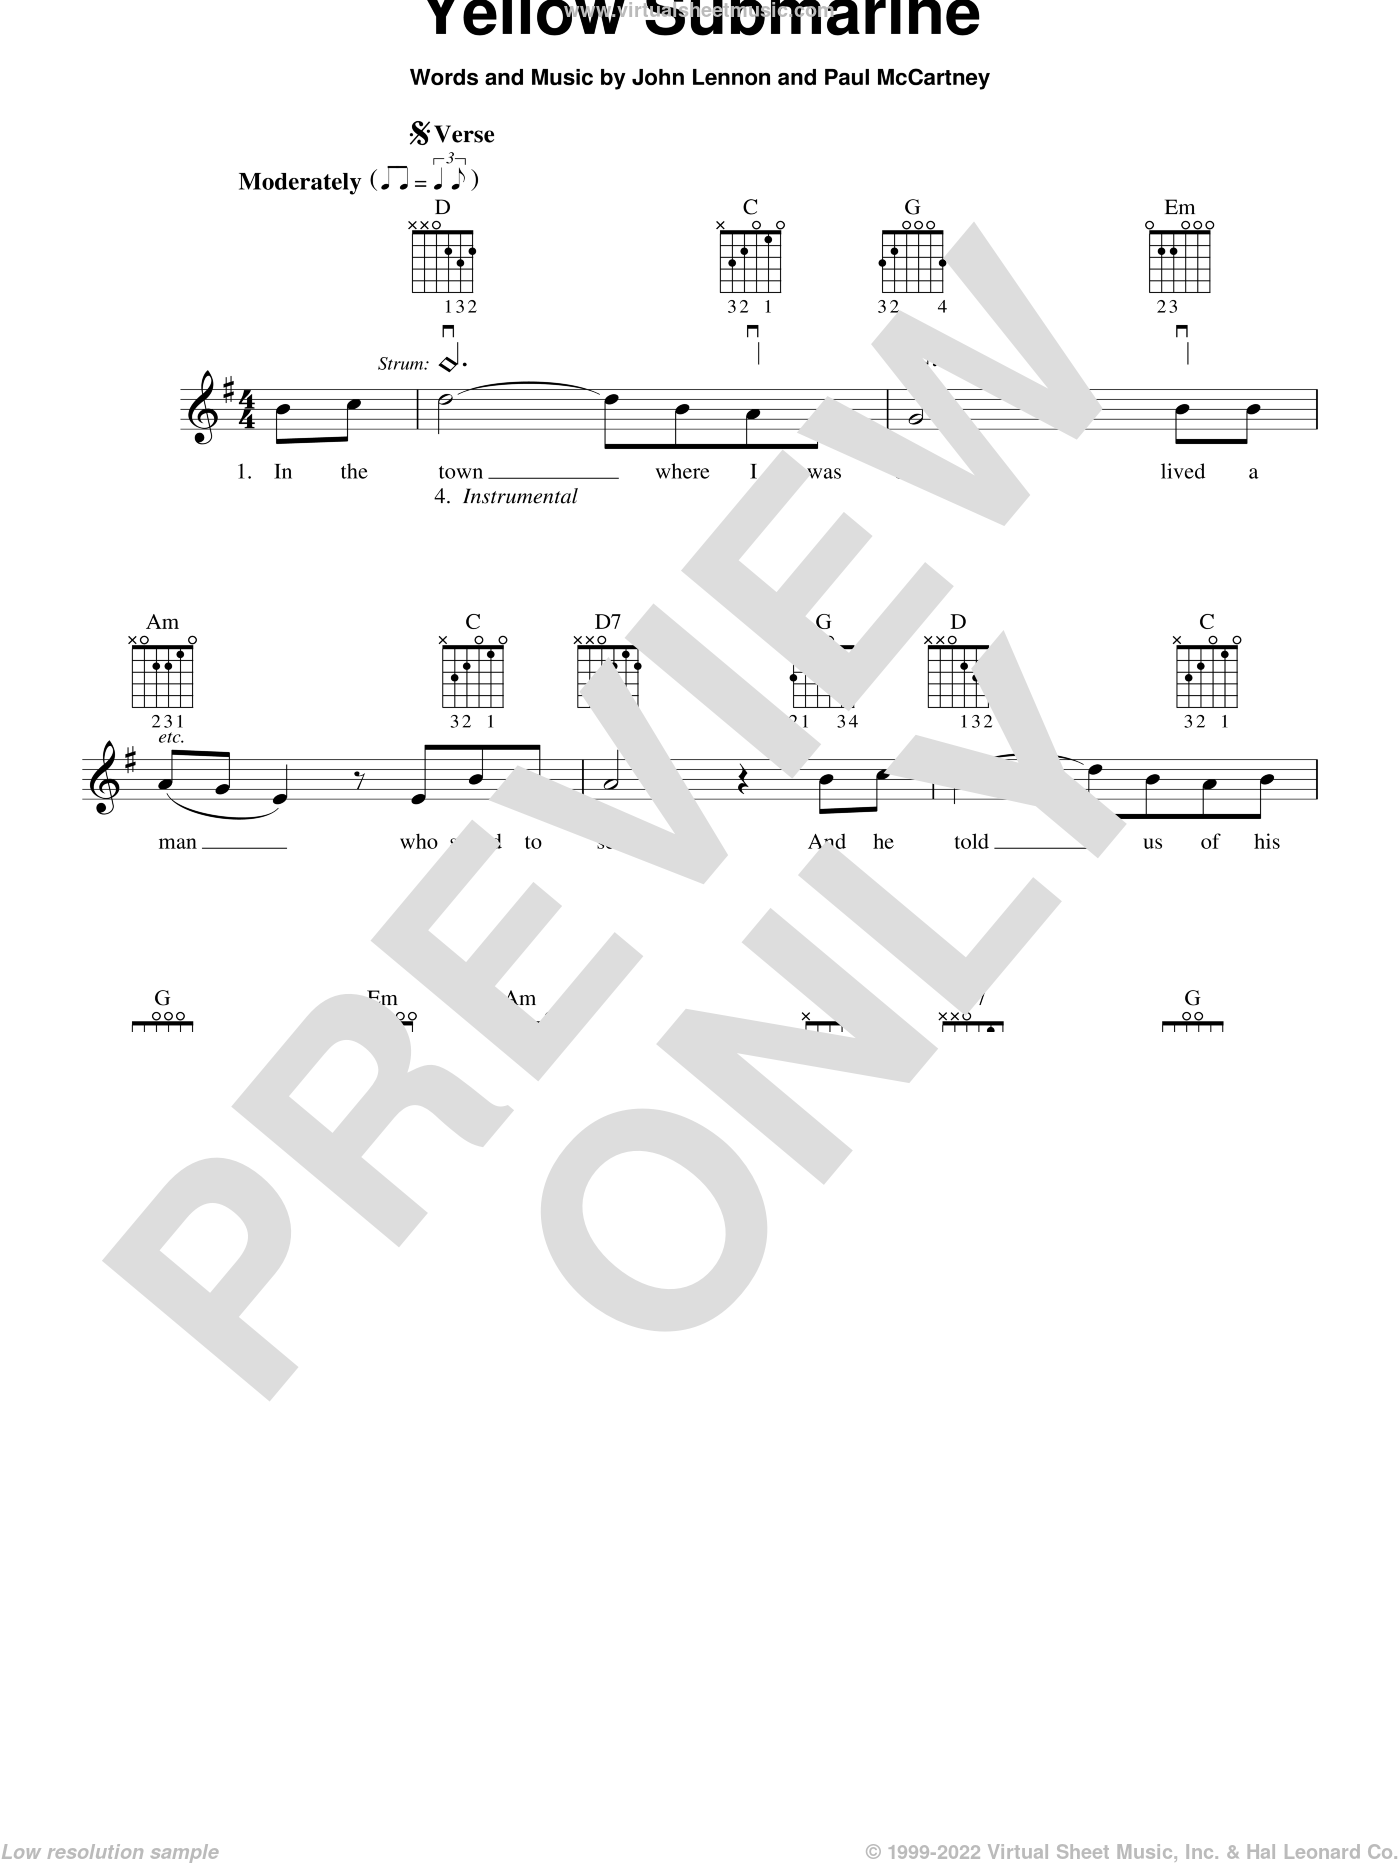 Yellow Submarine sheet music for guitar solo (chords) by The Beatles, John Lennon and Paul McCartney. Score Image Preview.